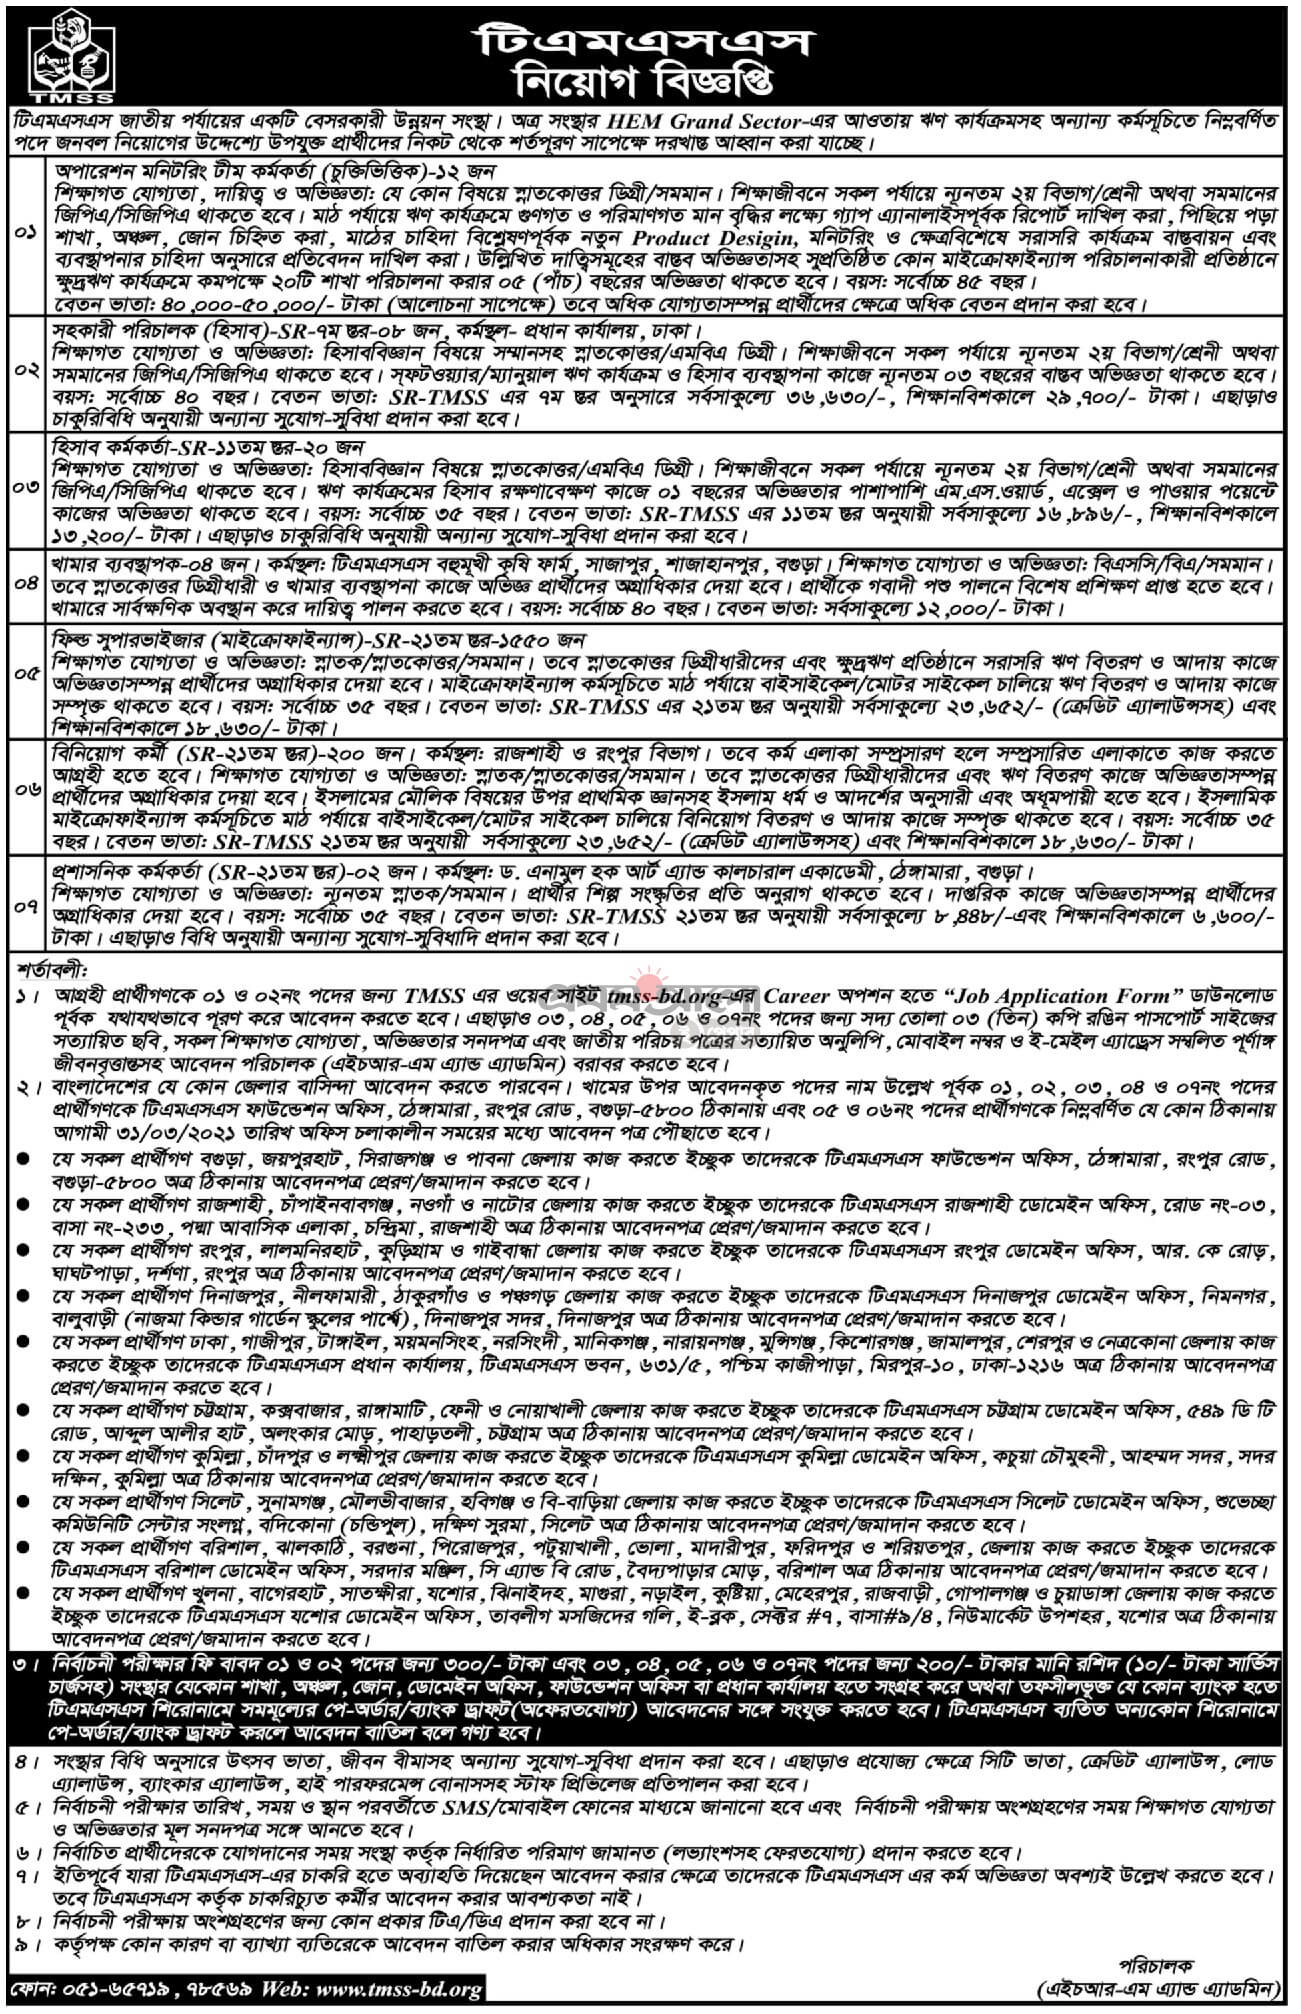 TMSS NGO New Job Circular 2021